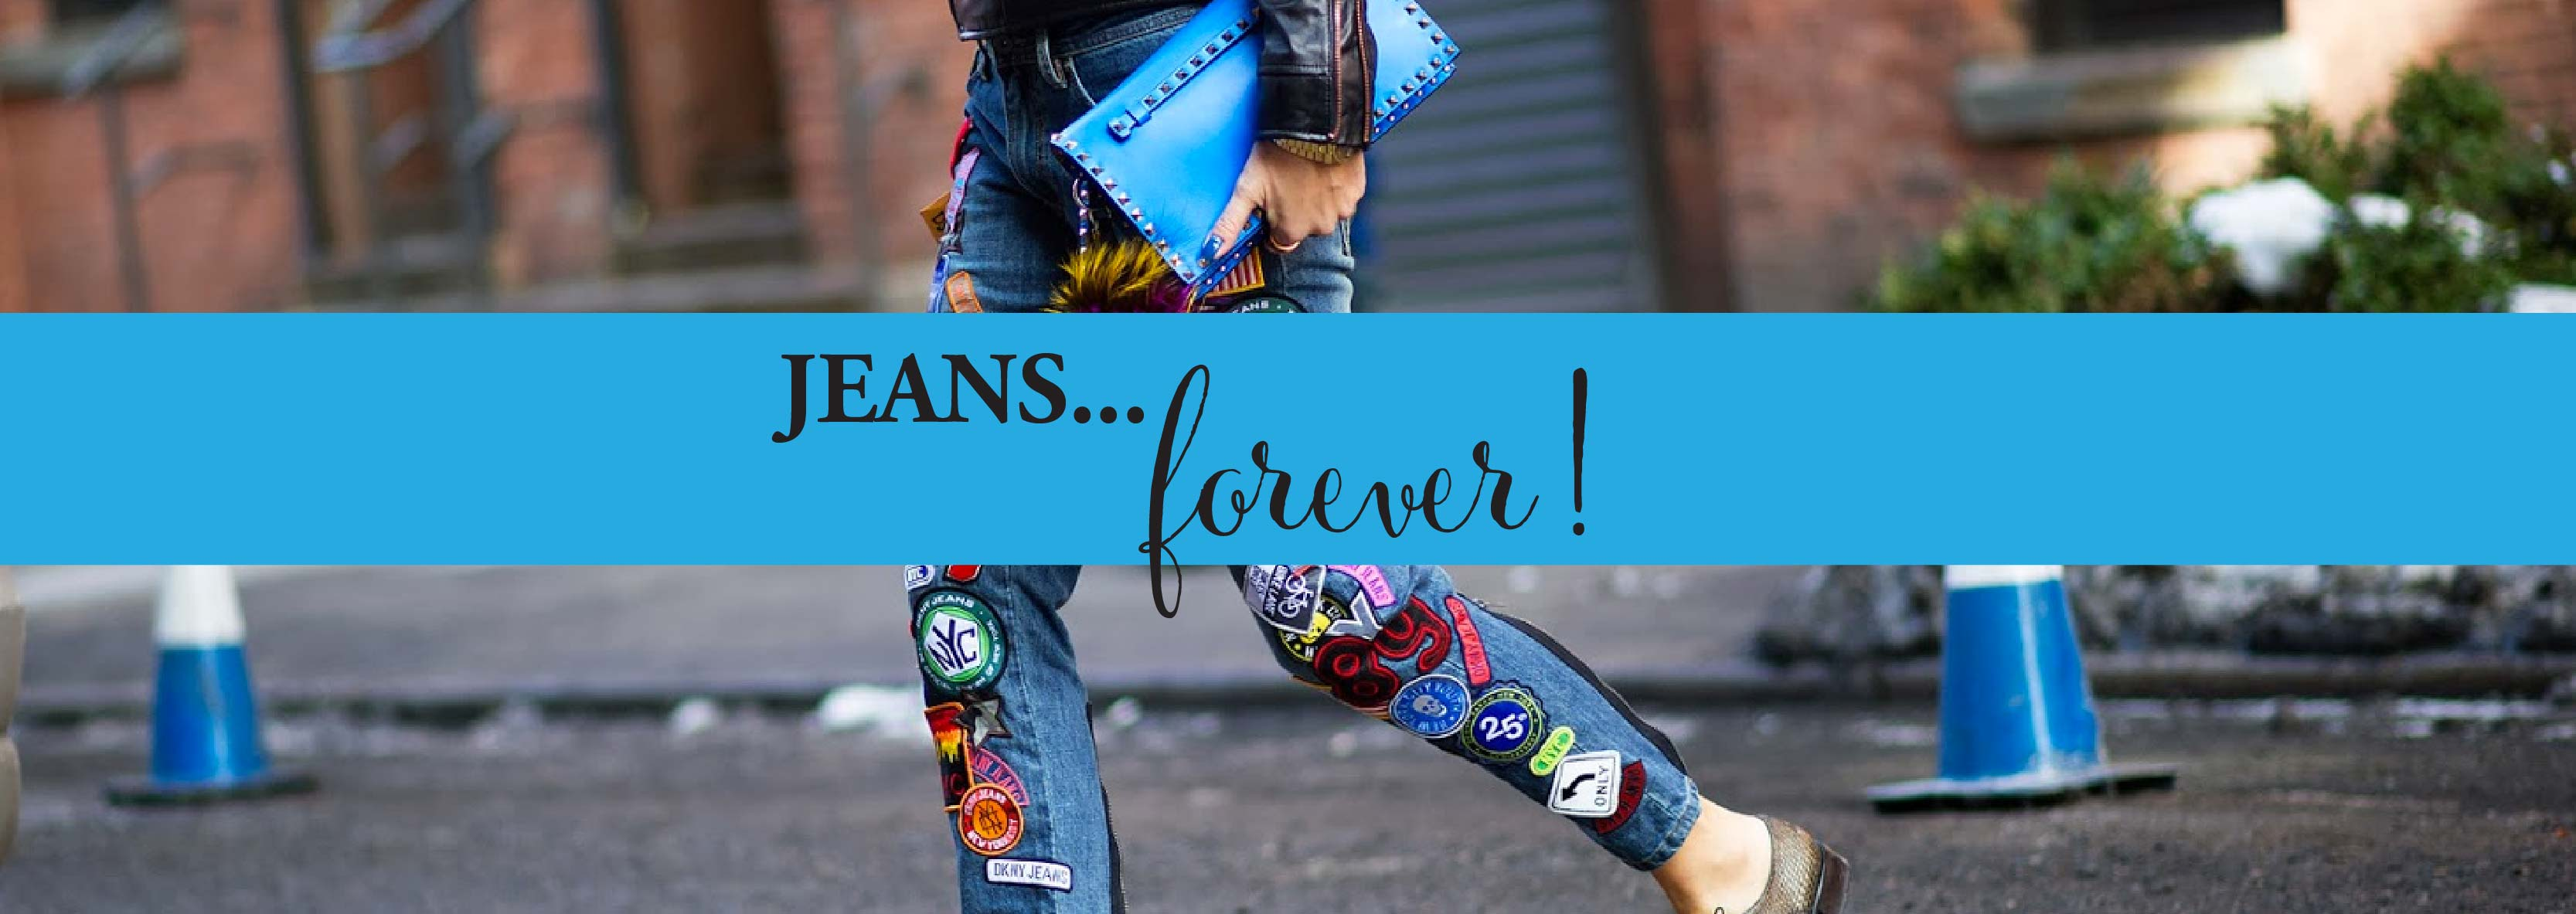 dash-jeans-forever-02